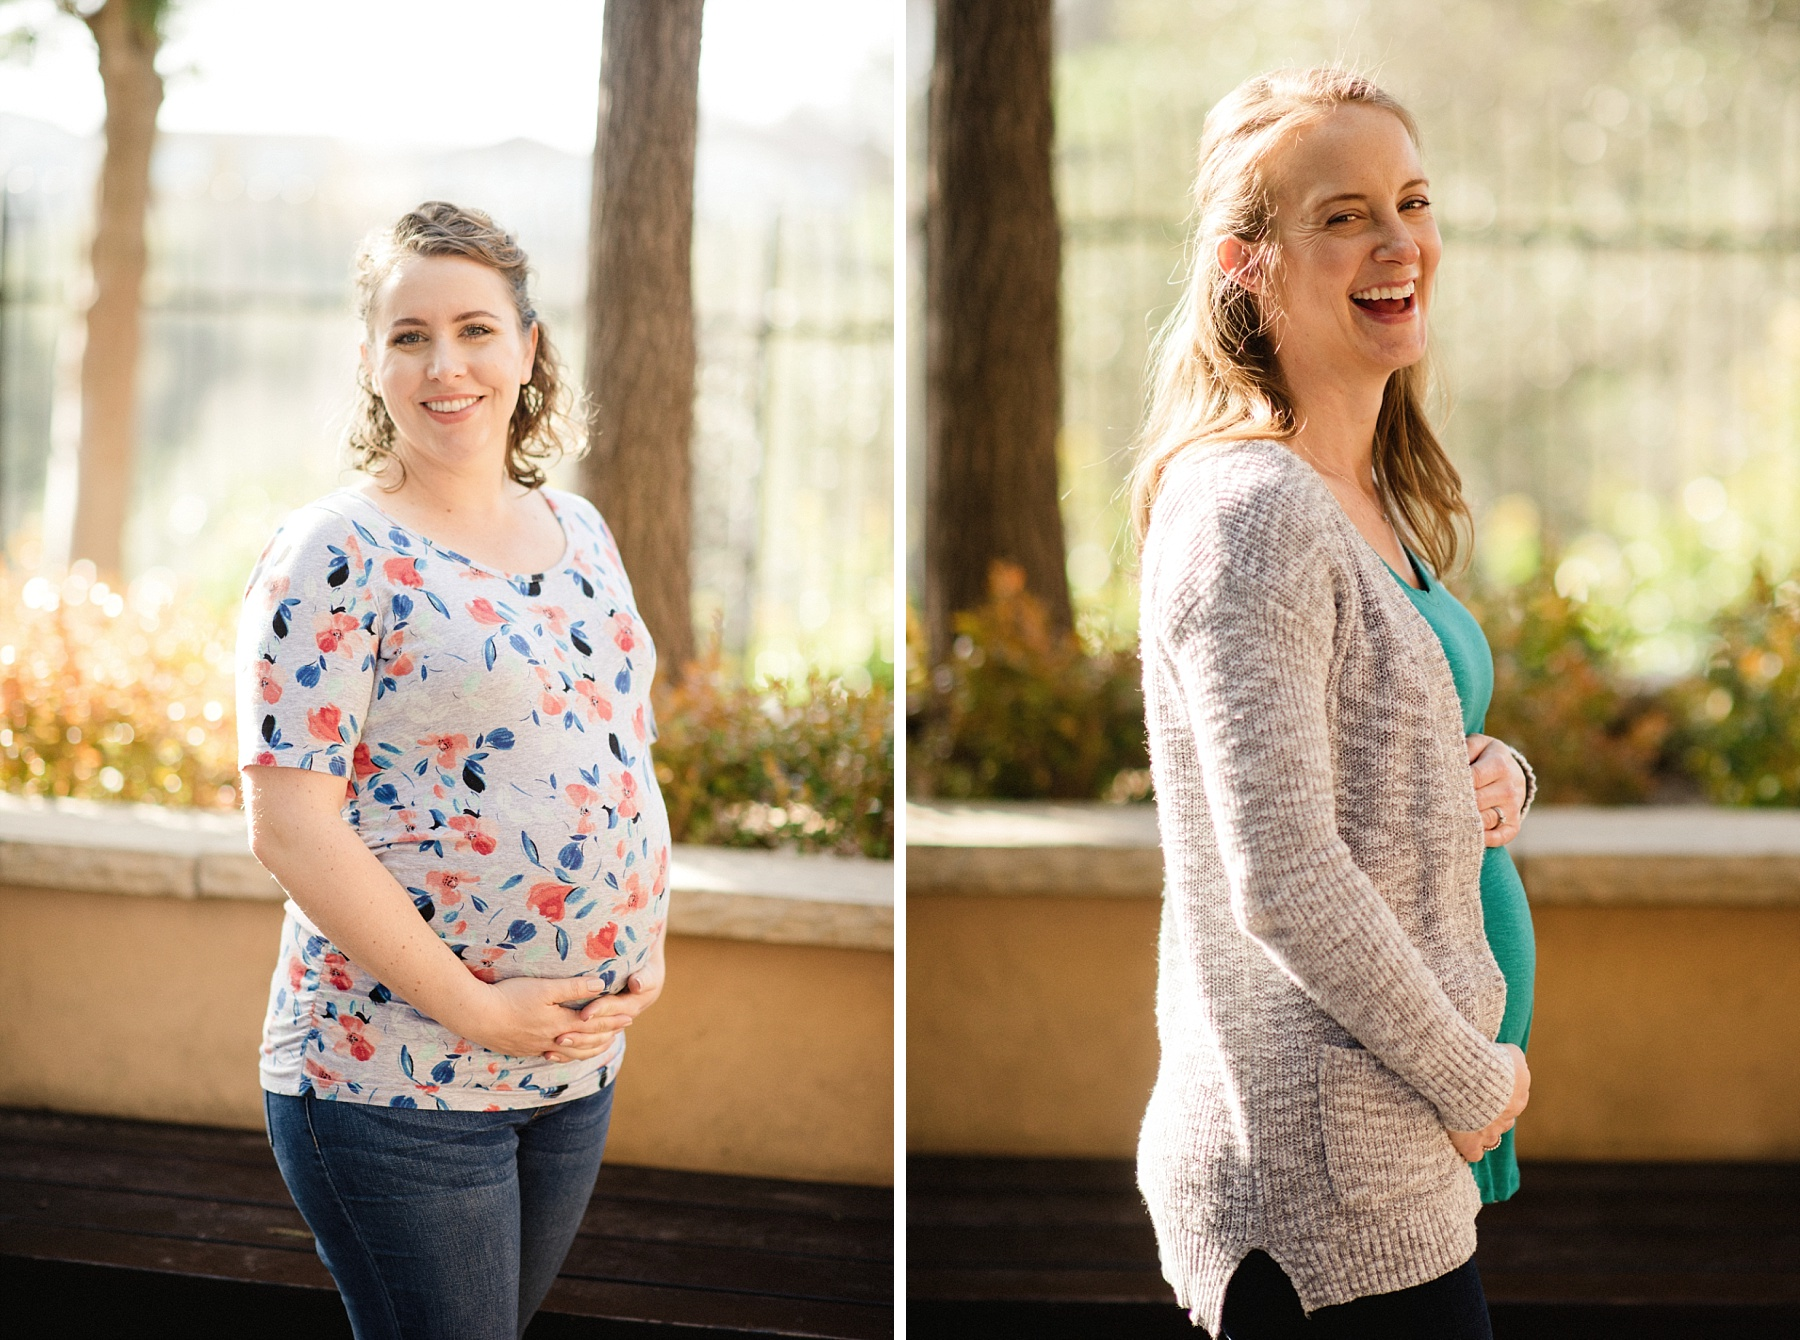 Roseville Styled Maternity Session by Sarah Maren Photography